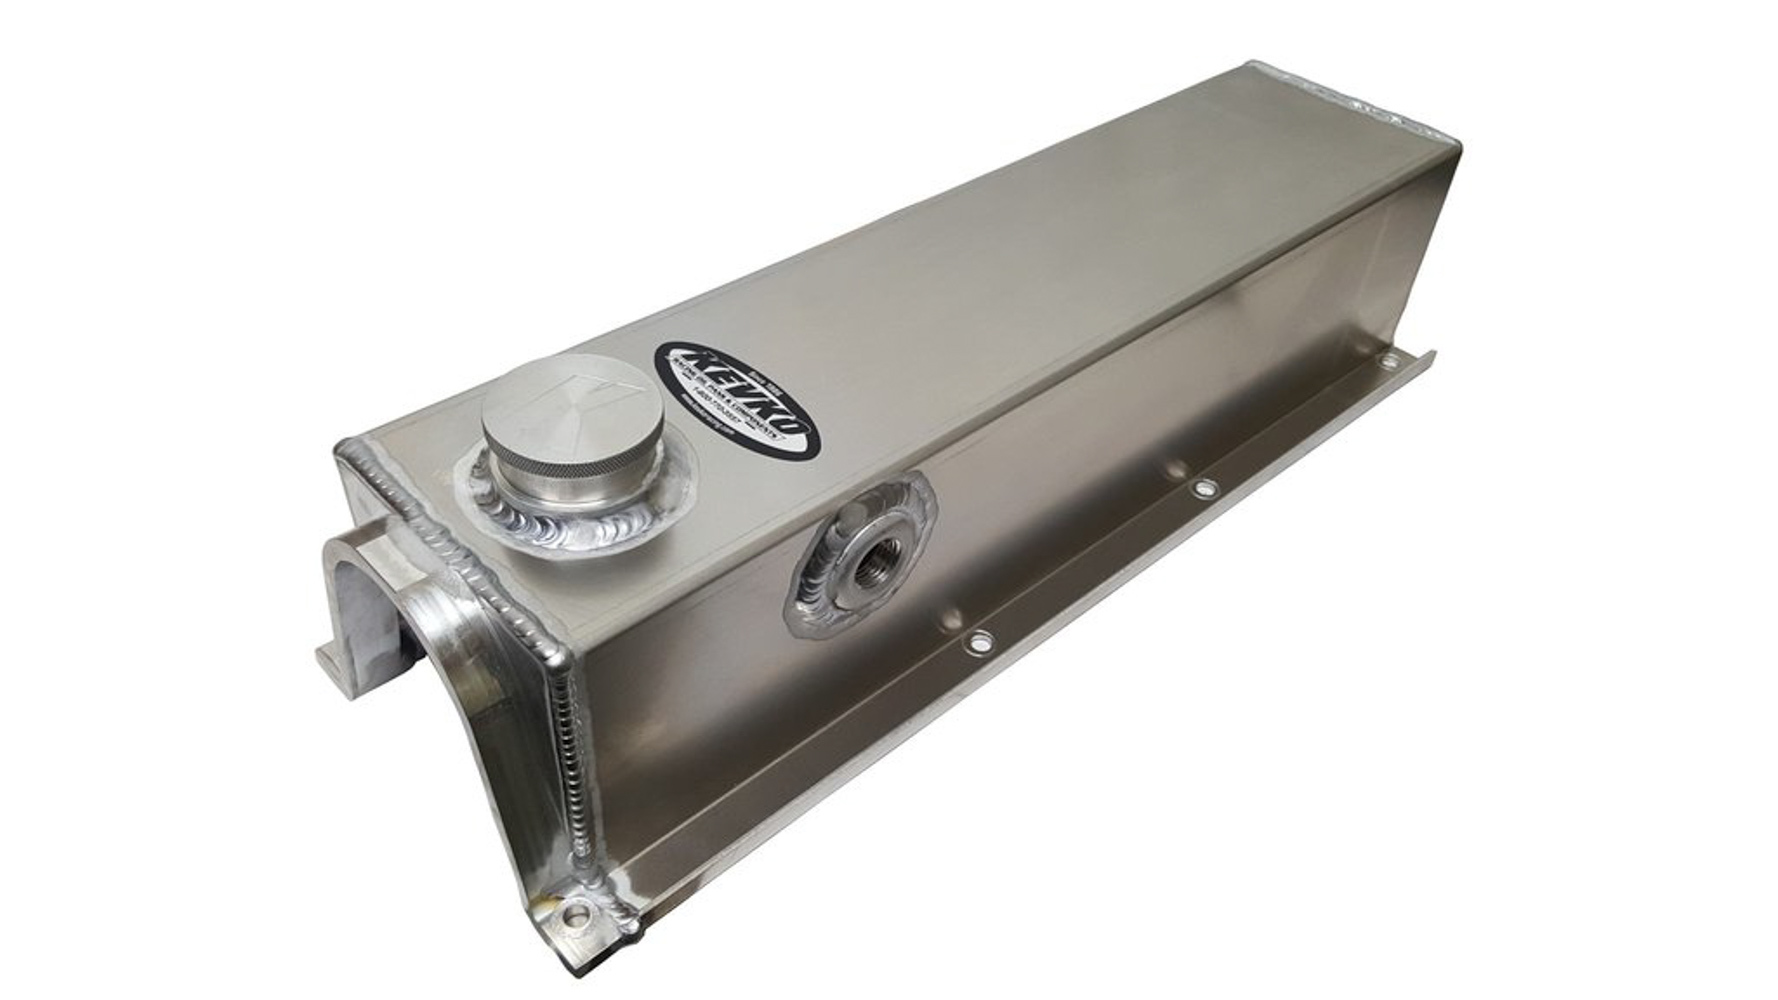 Kevko Oil Pans VC212 Valve Cover, Fabricated Aluminum, Natural, Ford, 2300 4-Cyl, Each